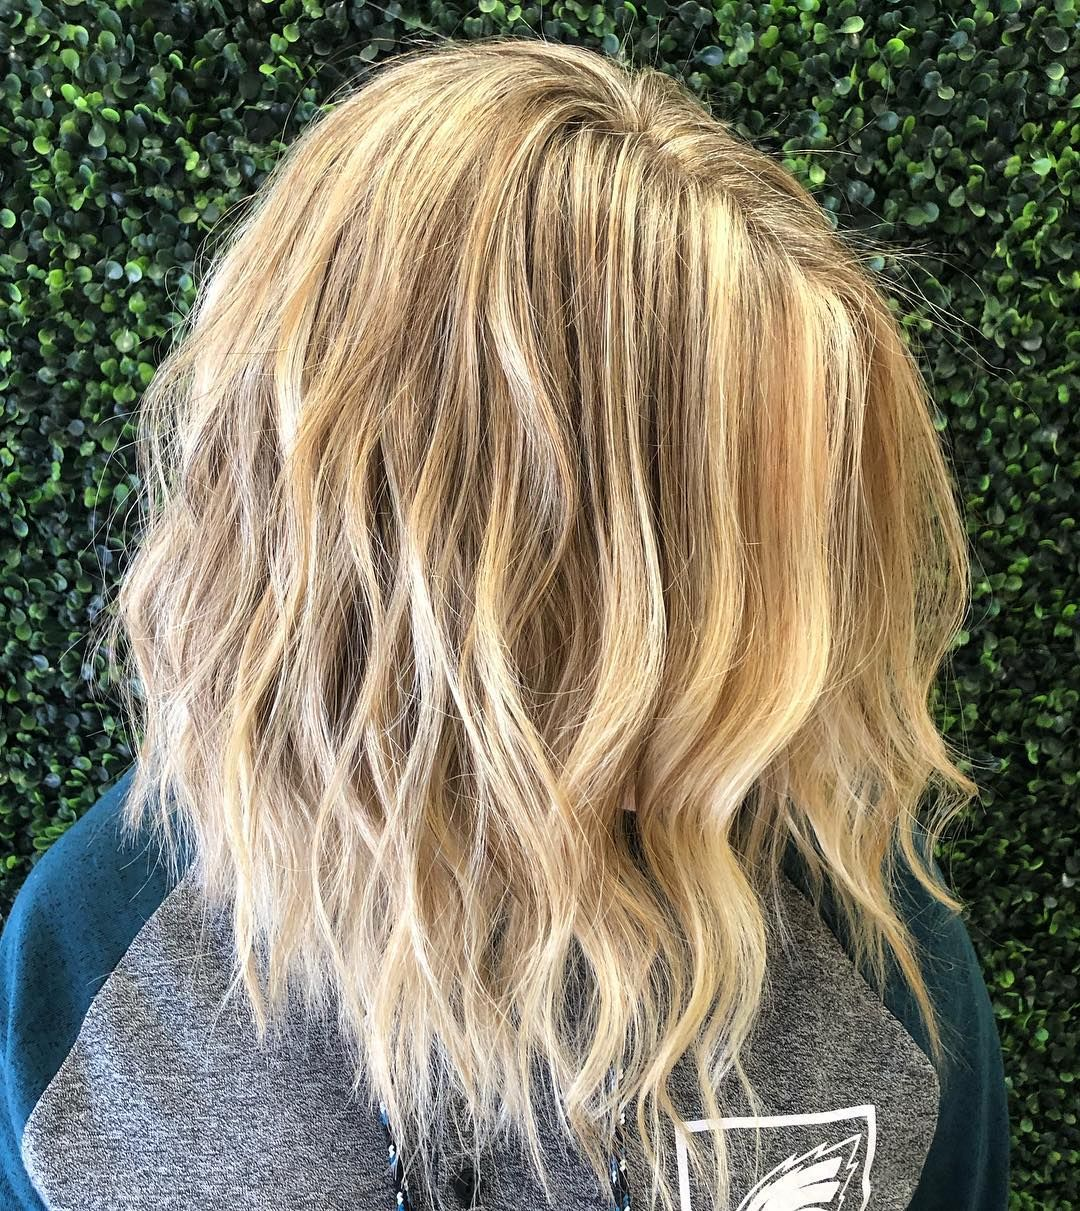 Living Life To The Fullest Blonde Redkencolor Studiork Fortmyershairstylist Keratintreatment Keratin Treatment Long Hair Styles Redken Color